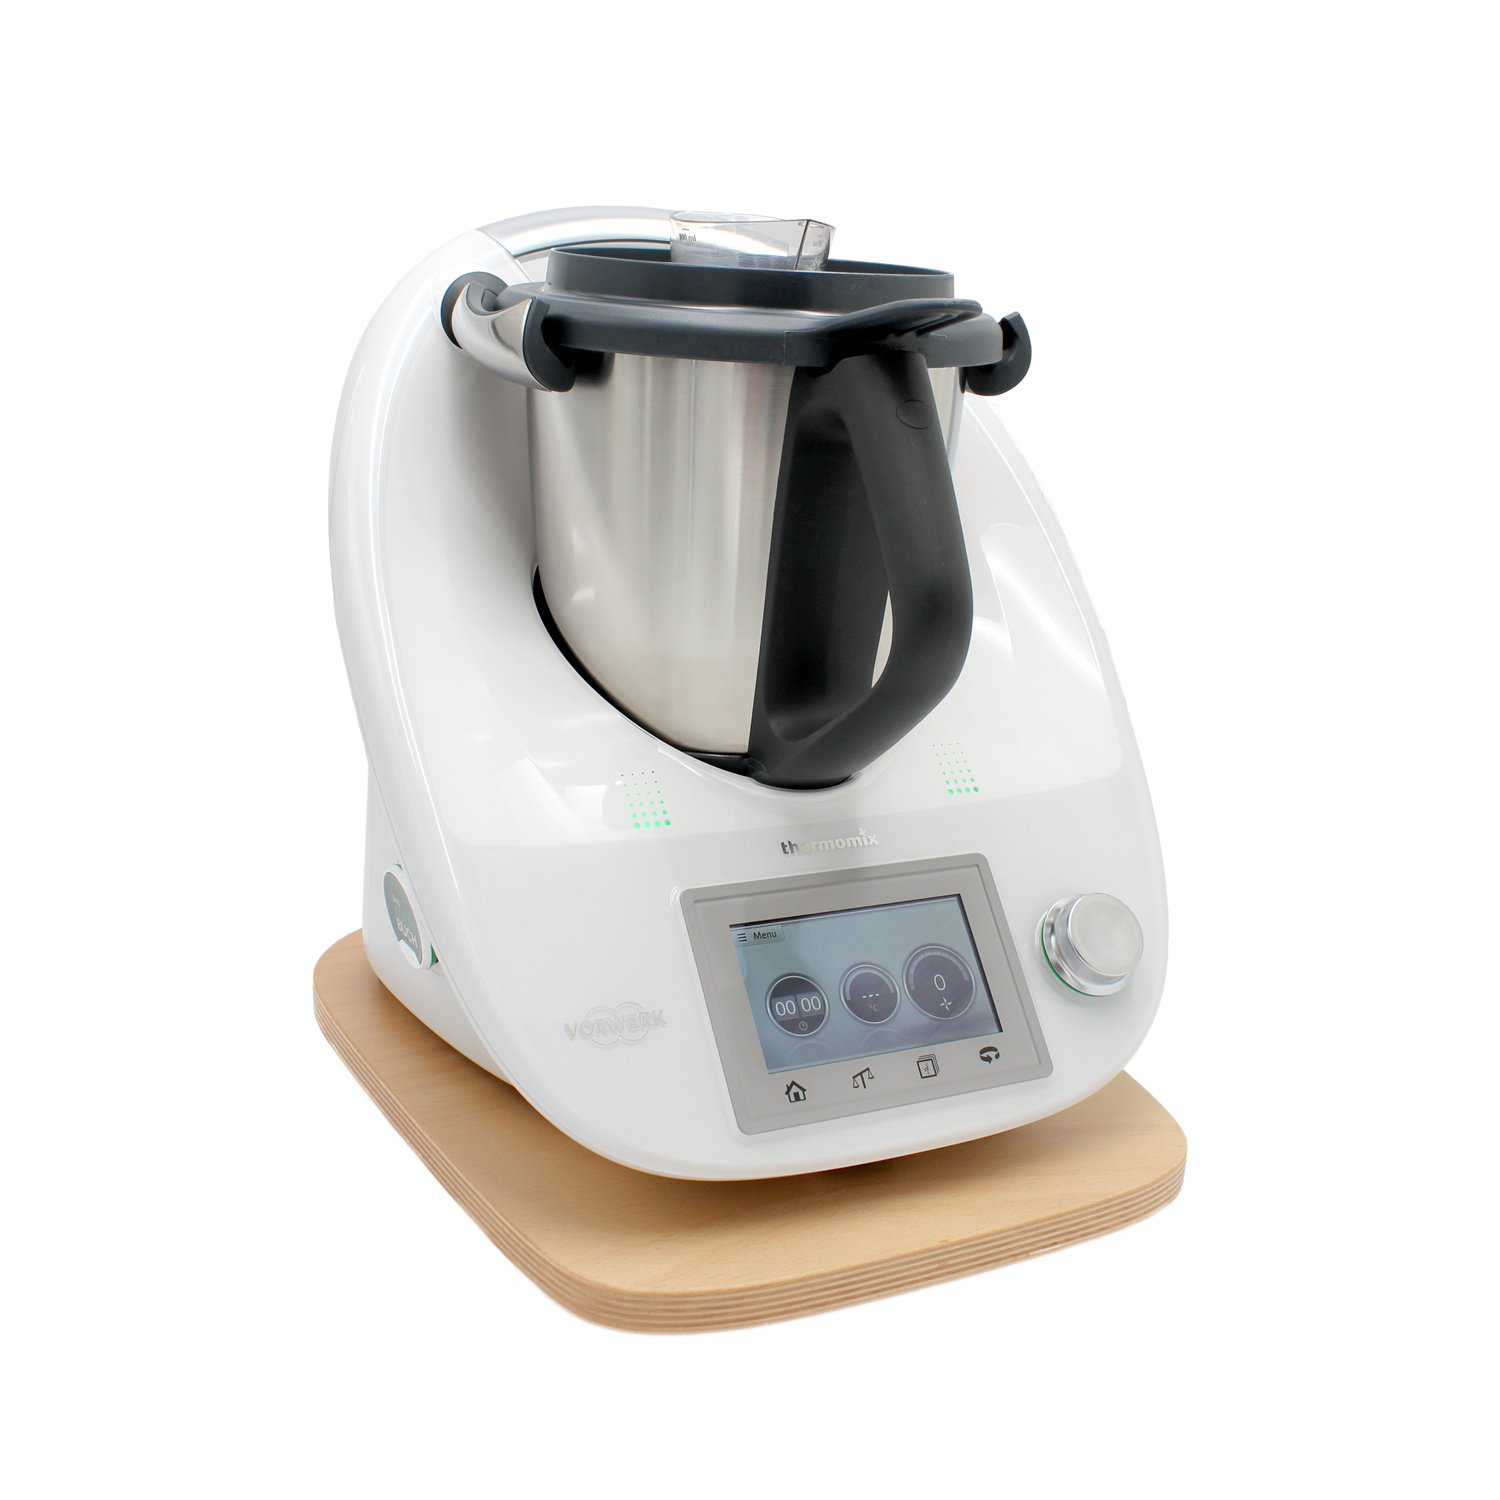 ThermoMobil, tabla deslizante de madera de haya para la Thermomix TM5.: Amazon.es: Hogar